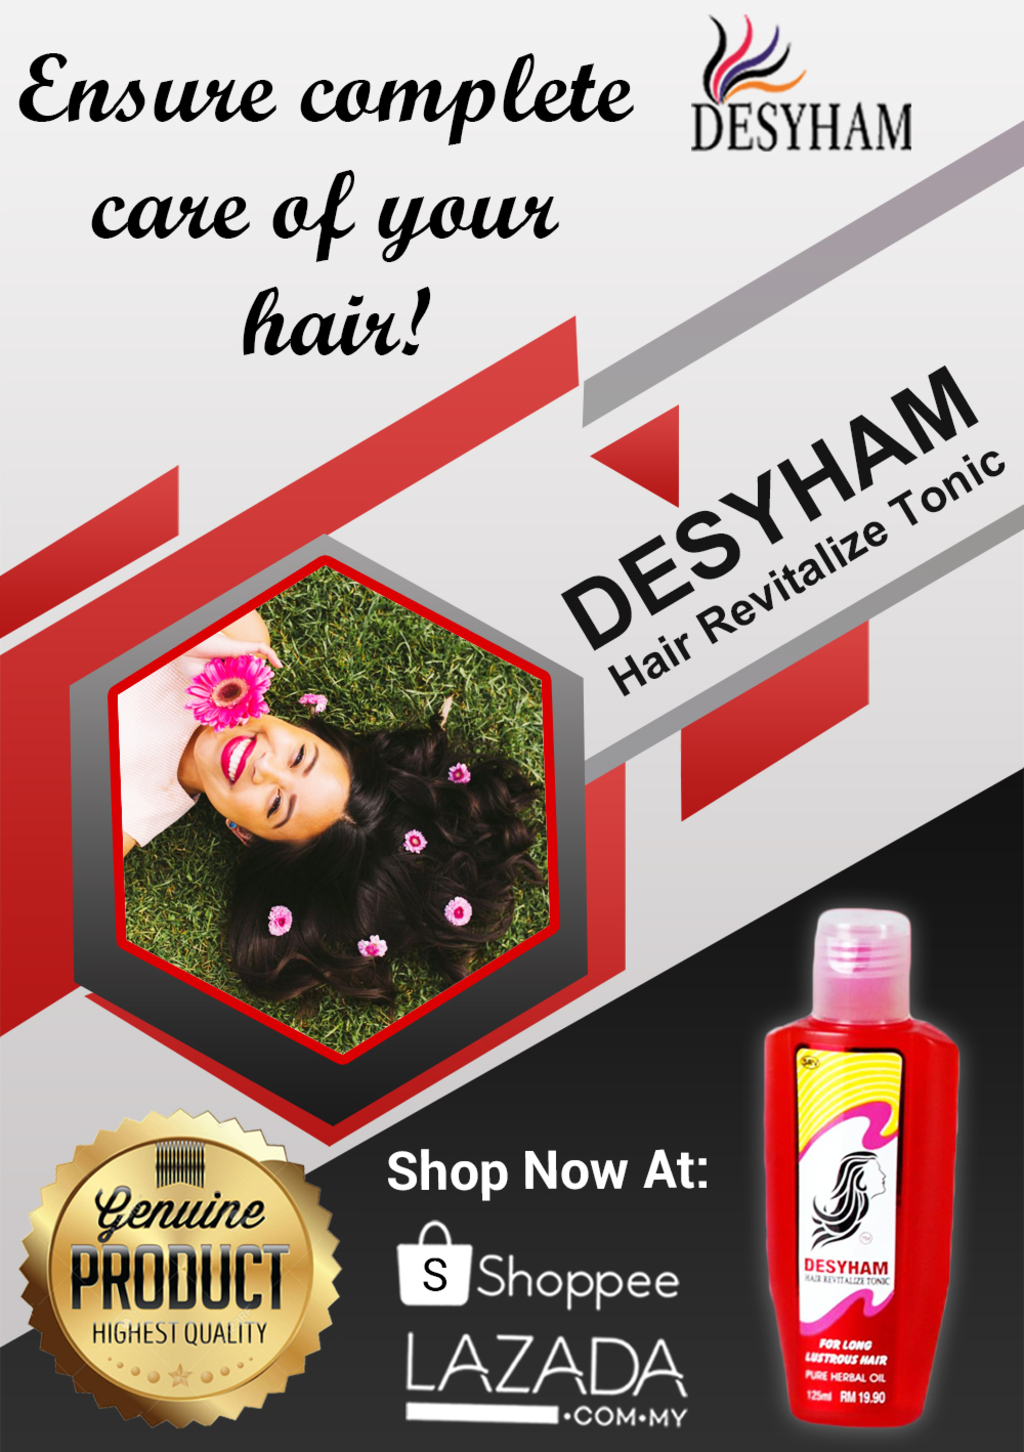 Give your hair a magical regrowth as it is farewell time for... via Desyham